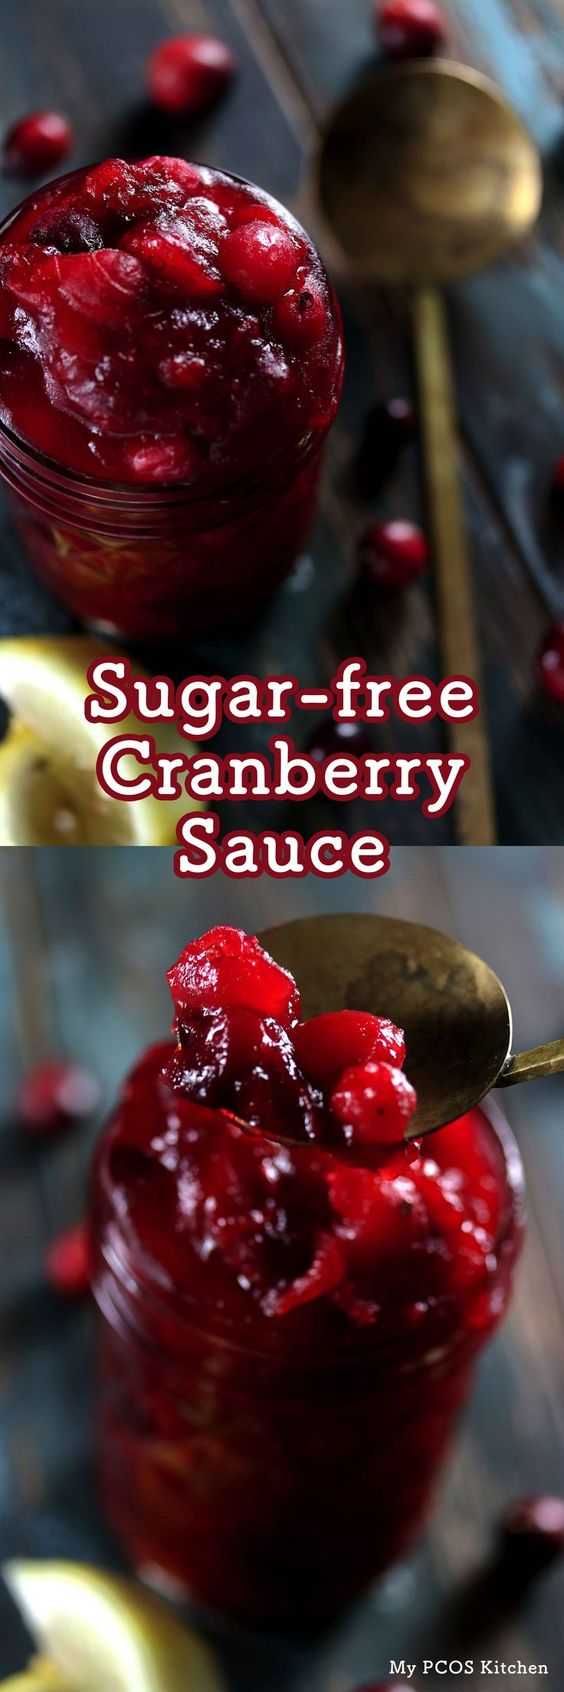 My PCOS Kitchen - Sugar-free Low Carb Cranberry Sauce - This low carb and keto cranberry sauce is sweetened with stevia and erythritol with lemon zest!